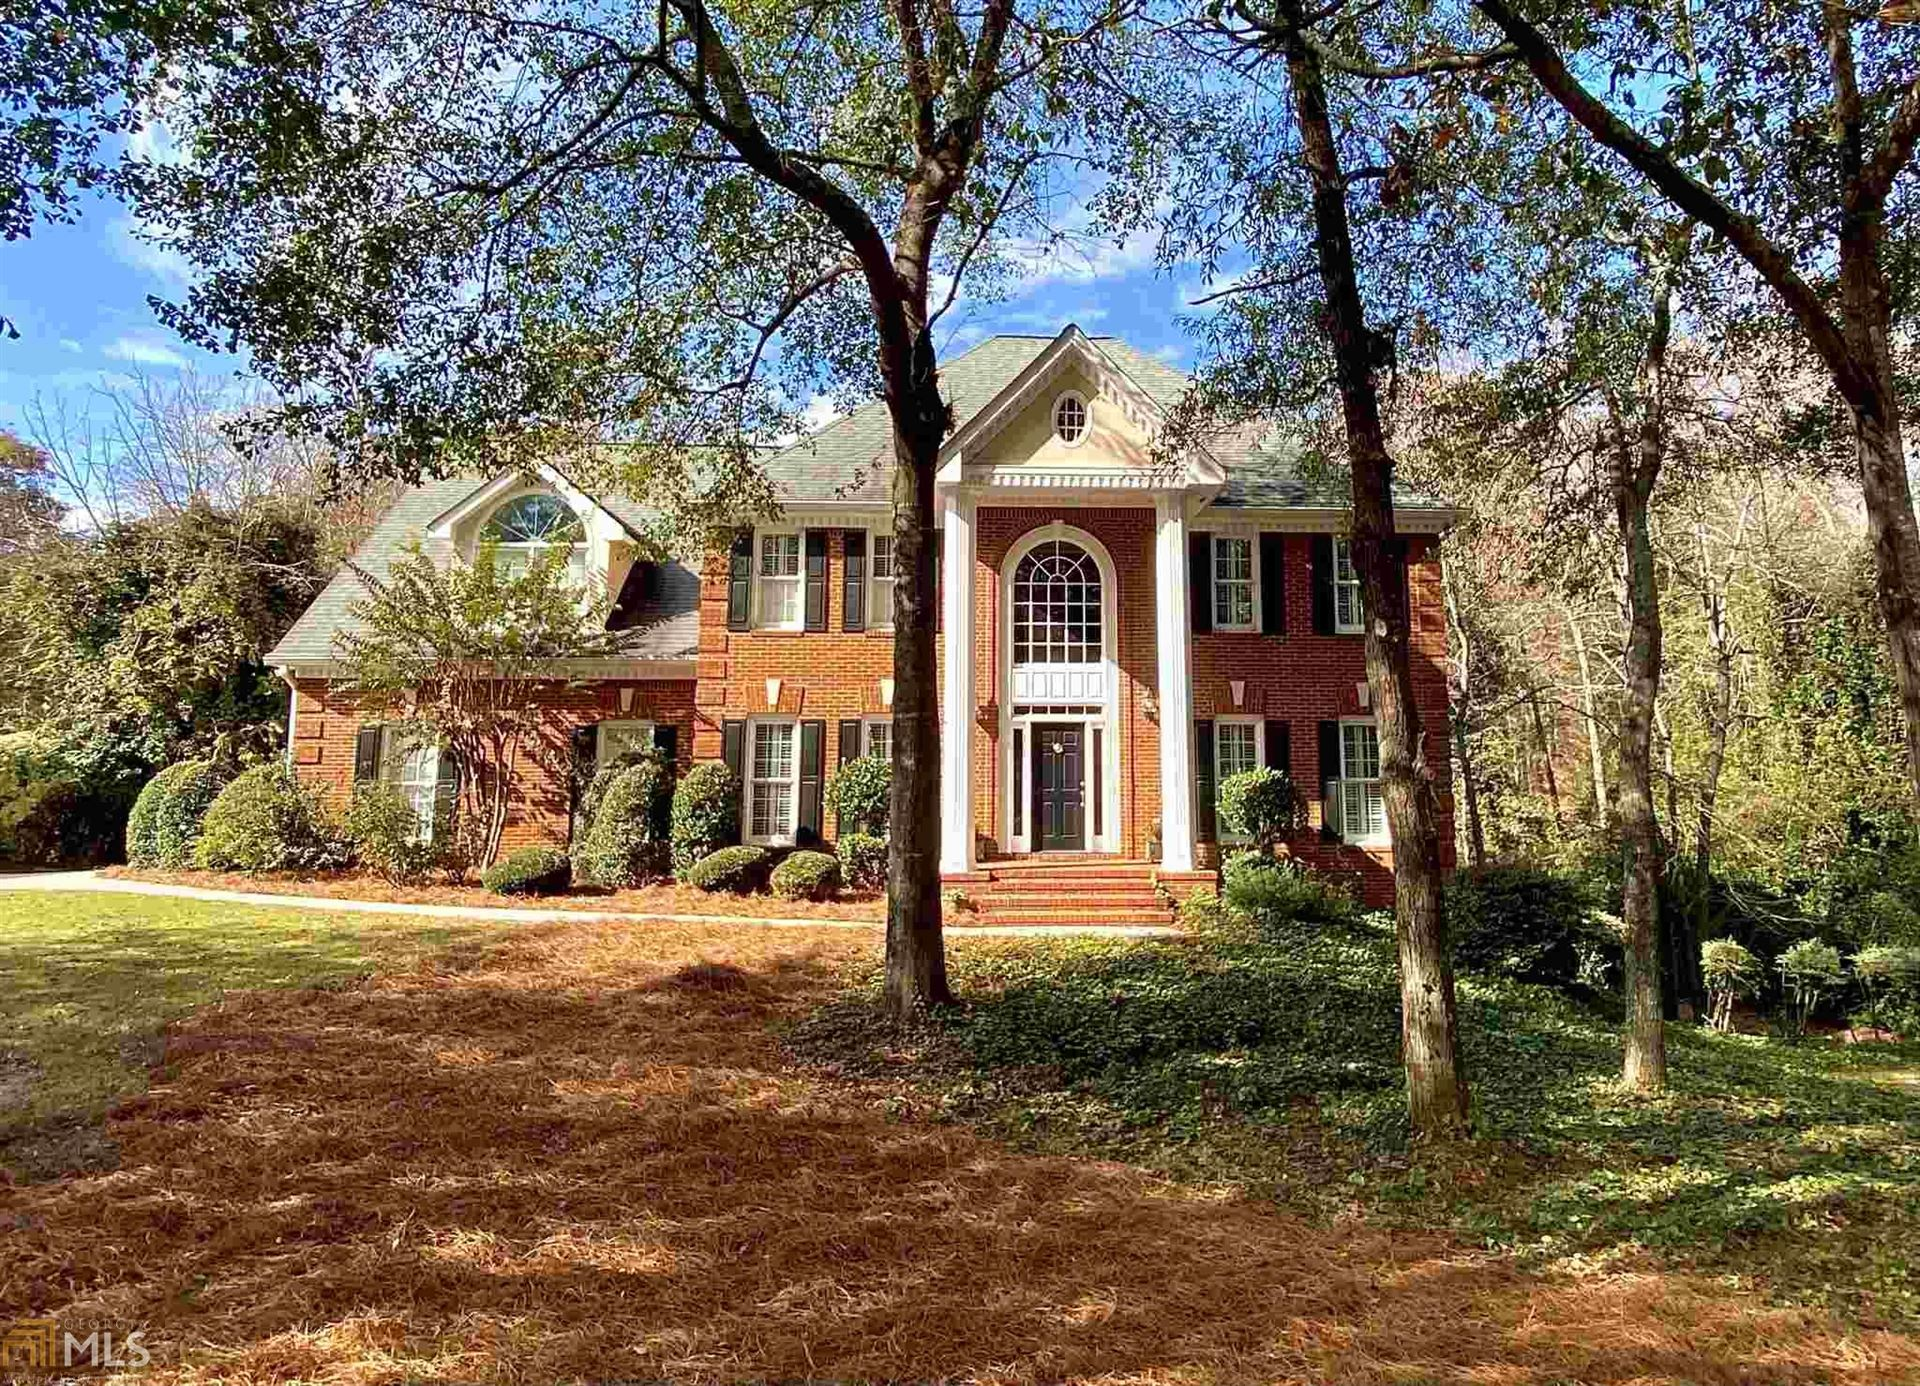 1321 Oxford Dr, Conyers, GA 30013 - MLS#: 8893763